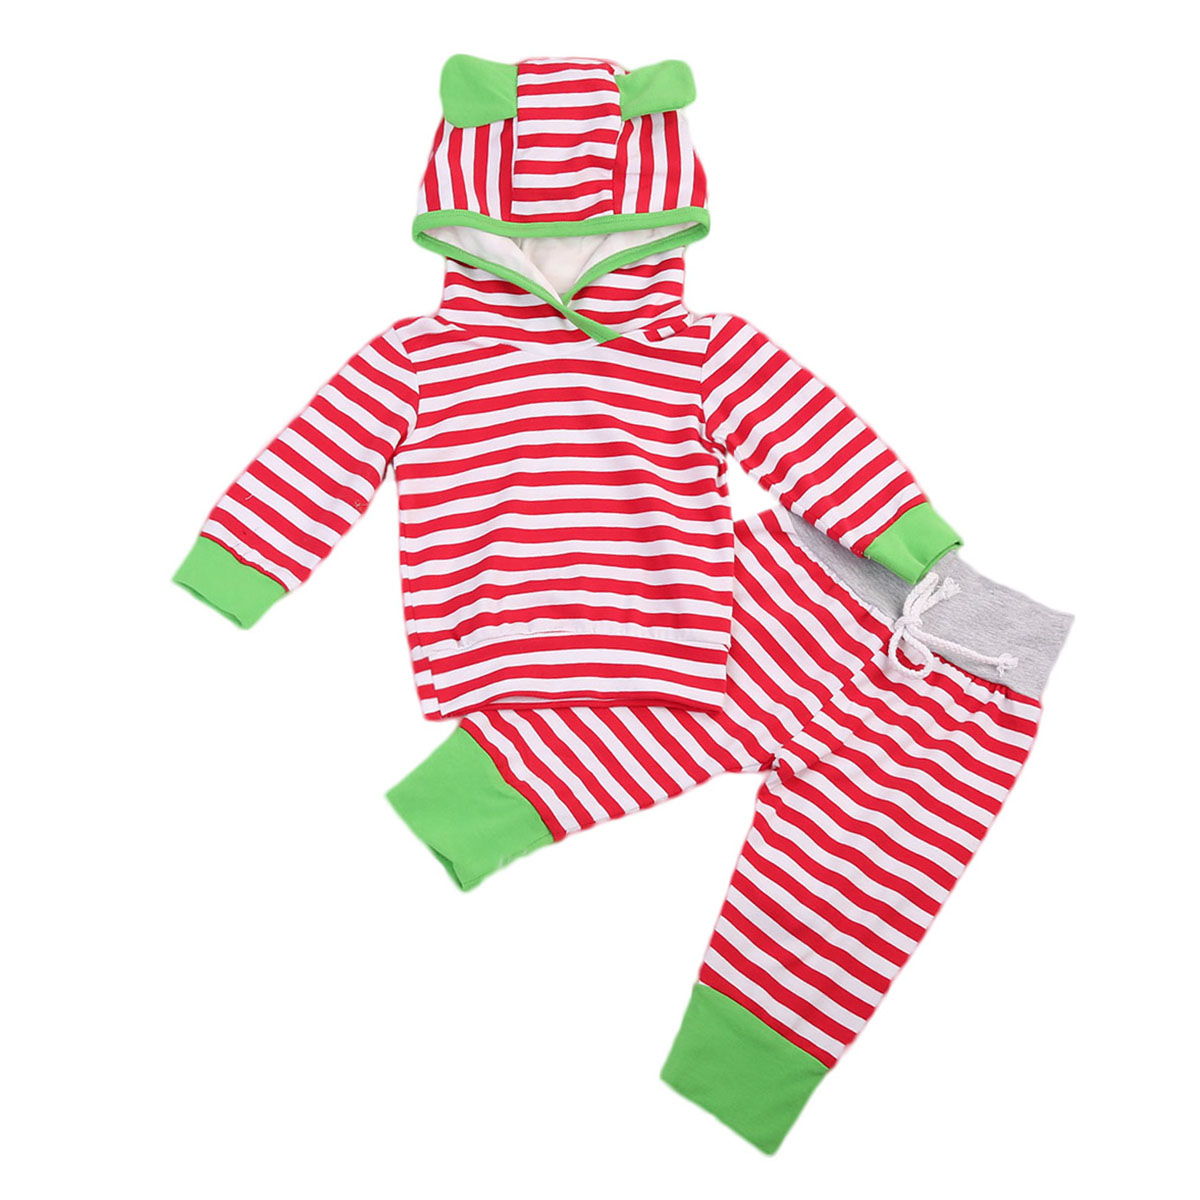 Striped Tops Hoodis Long Sleeve Hooded Pants Casual Outfit Clothing XMAX Newborn Kids Baby Girl Boys Clothes Sets girls tops cute pants outfit clothes newborn kids baby girl clothing sets summer off shoulder striped short sleeve 1 6t